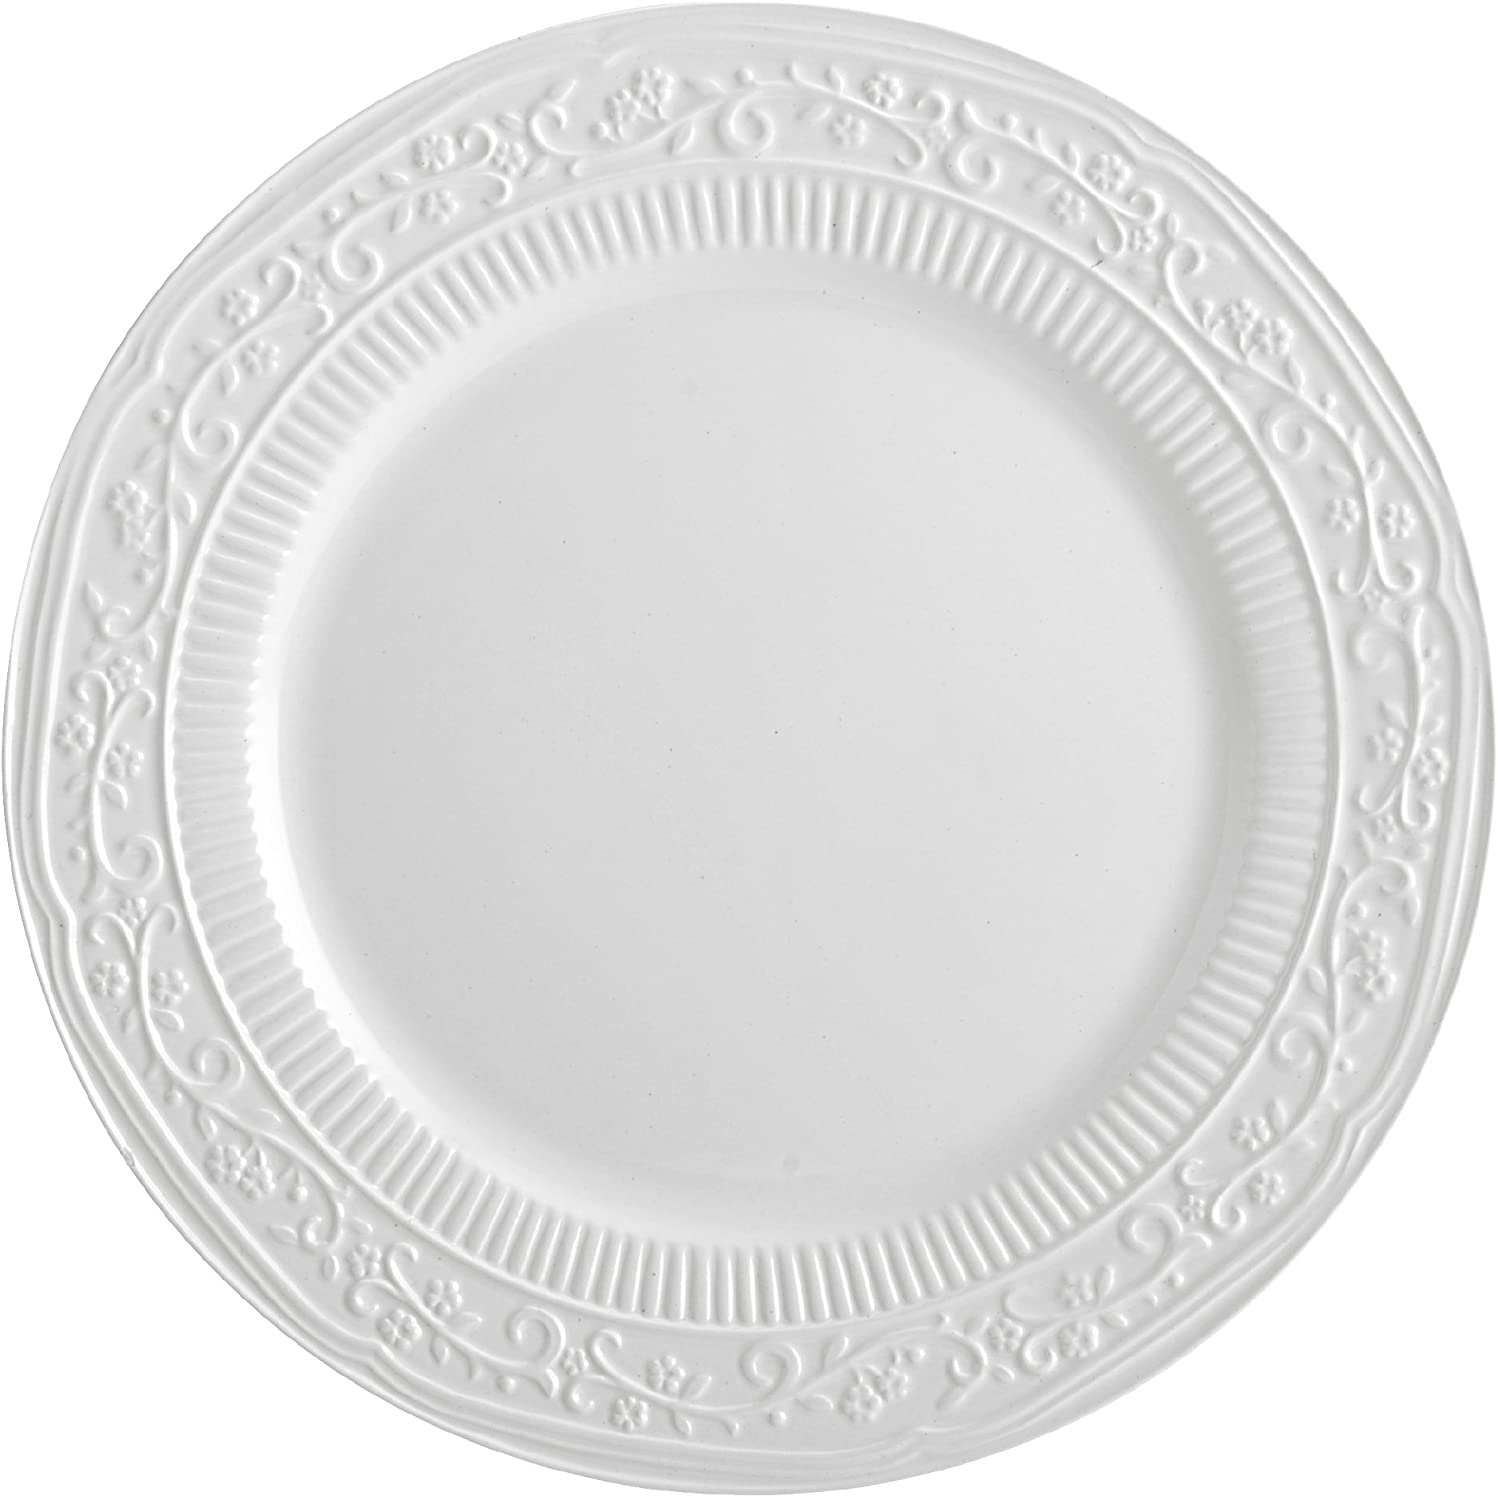 Mikasa American Countryside Round Serving Platter, 12-Inch